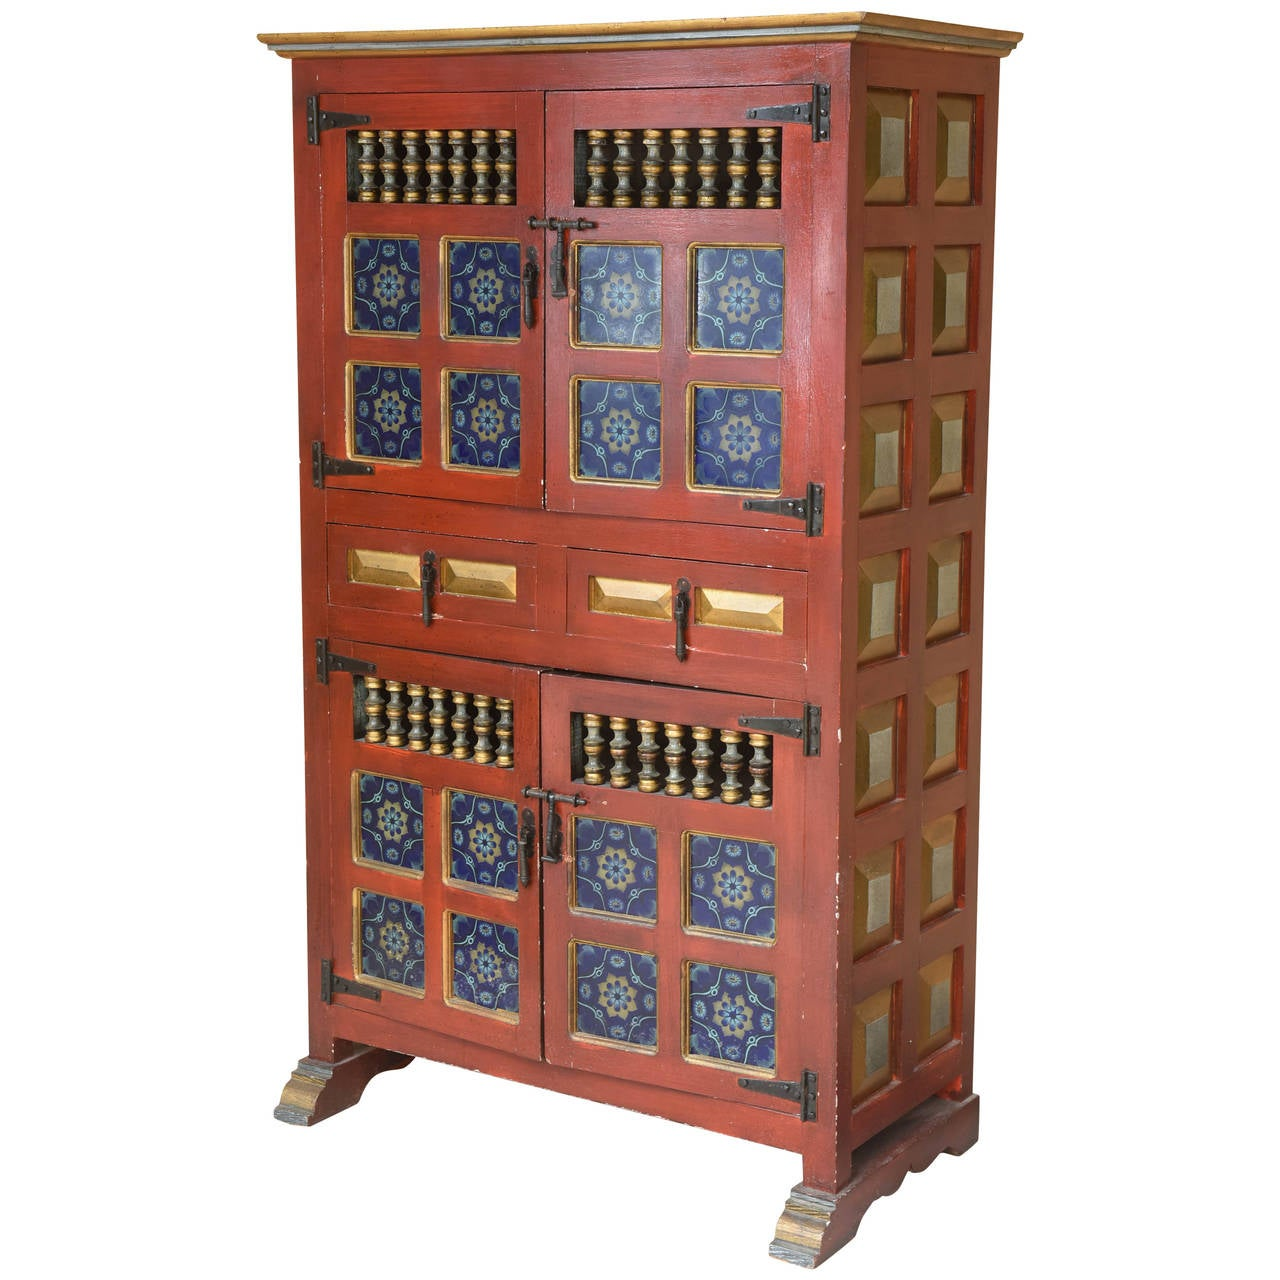 Spanish Hand-Painted Antique Kitchen Cupboard with Blue Tiles 1 - Spanish Hand-Painted Antique Kitchen Cupboard With Blue Tiles At